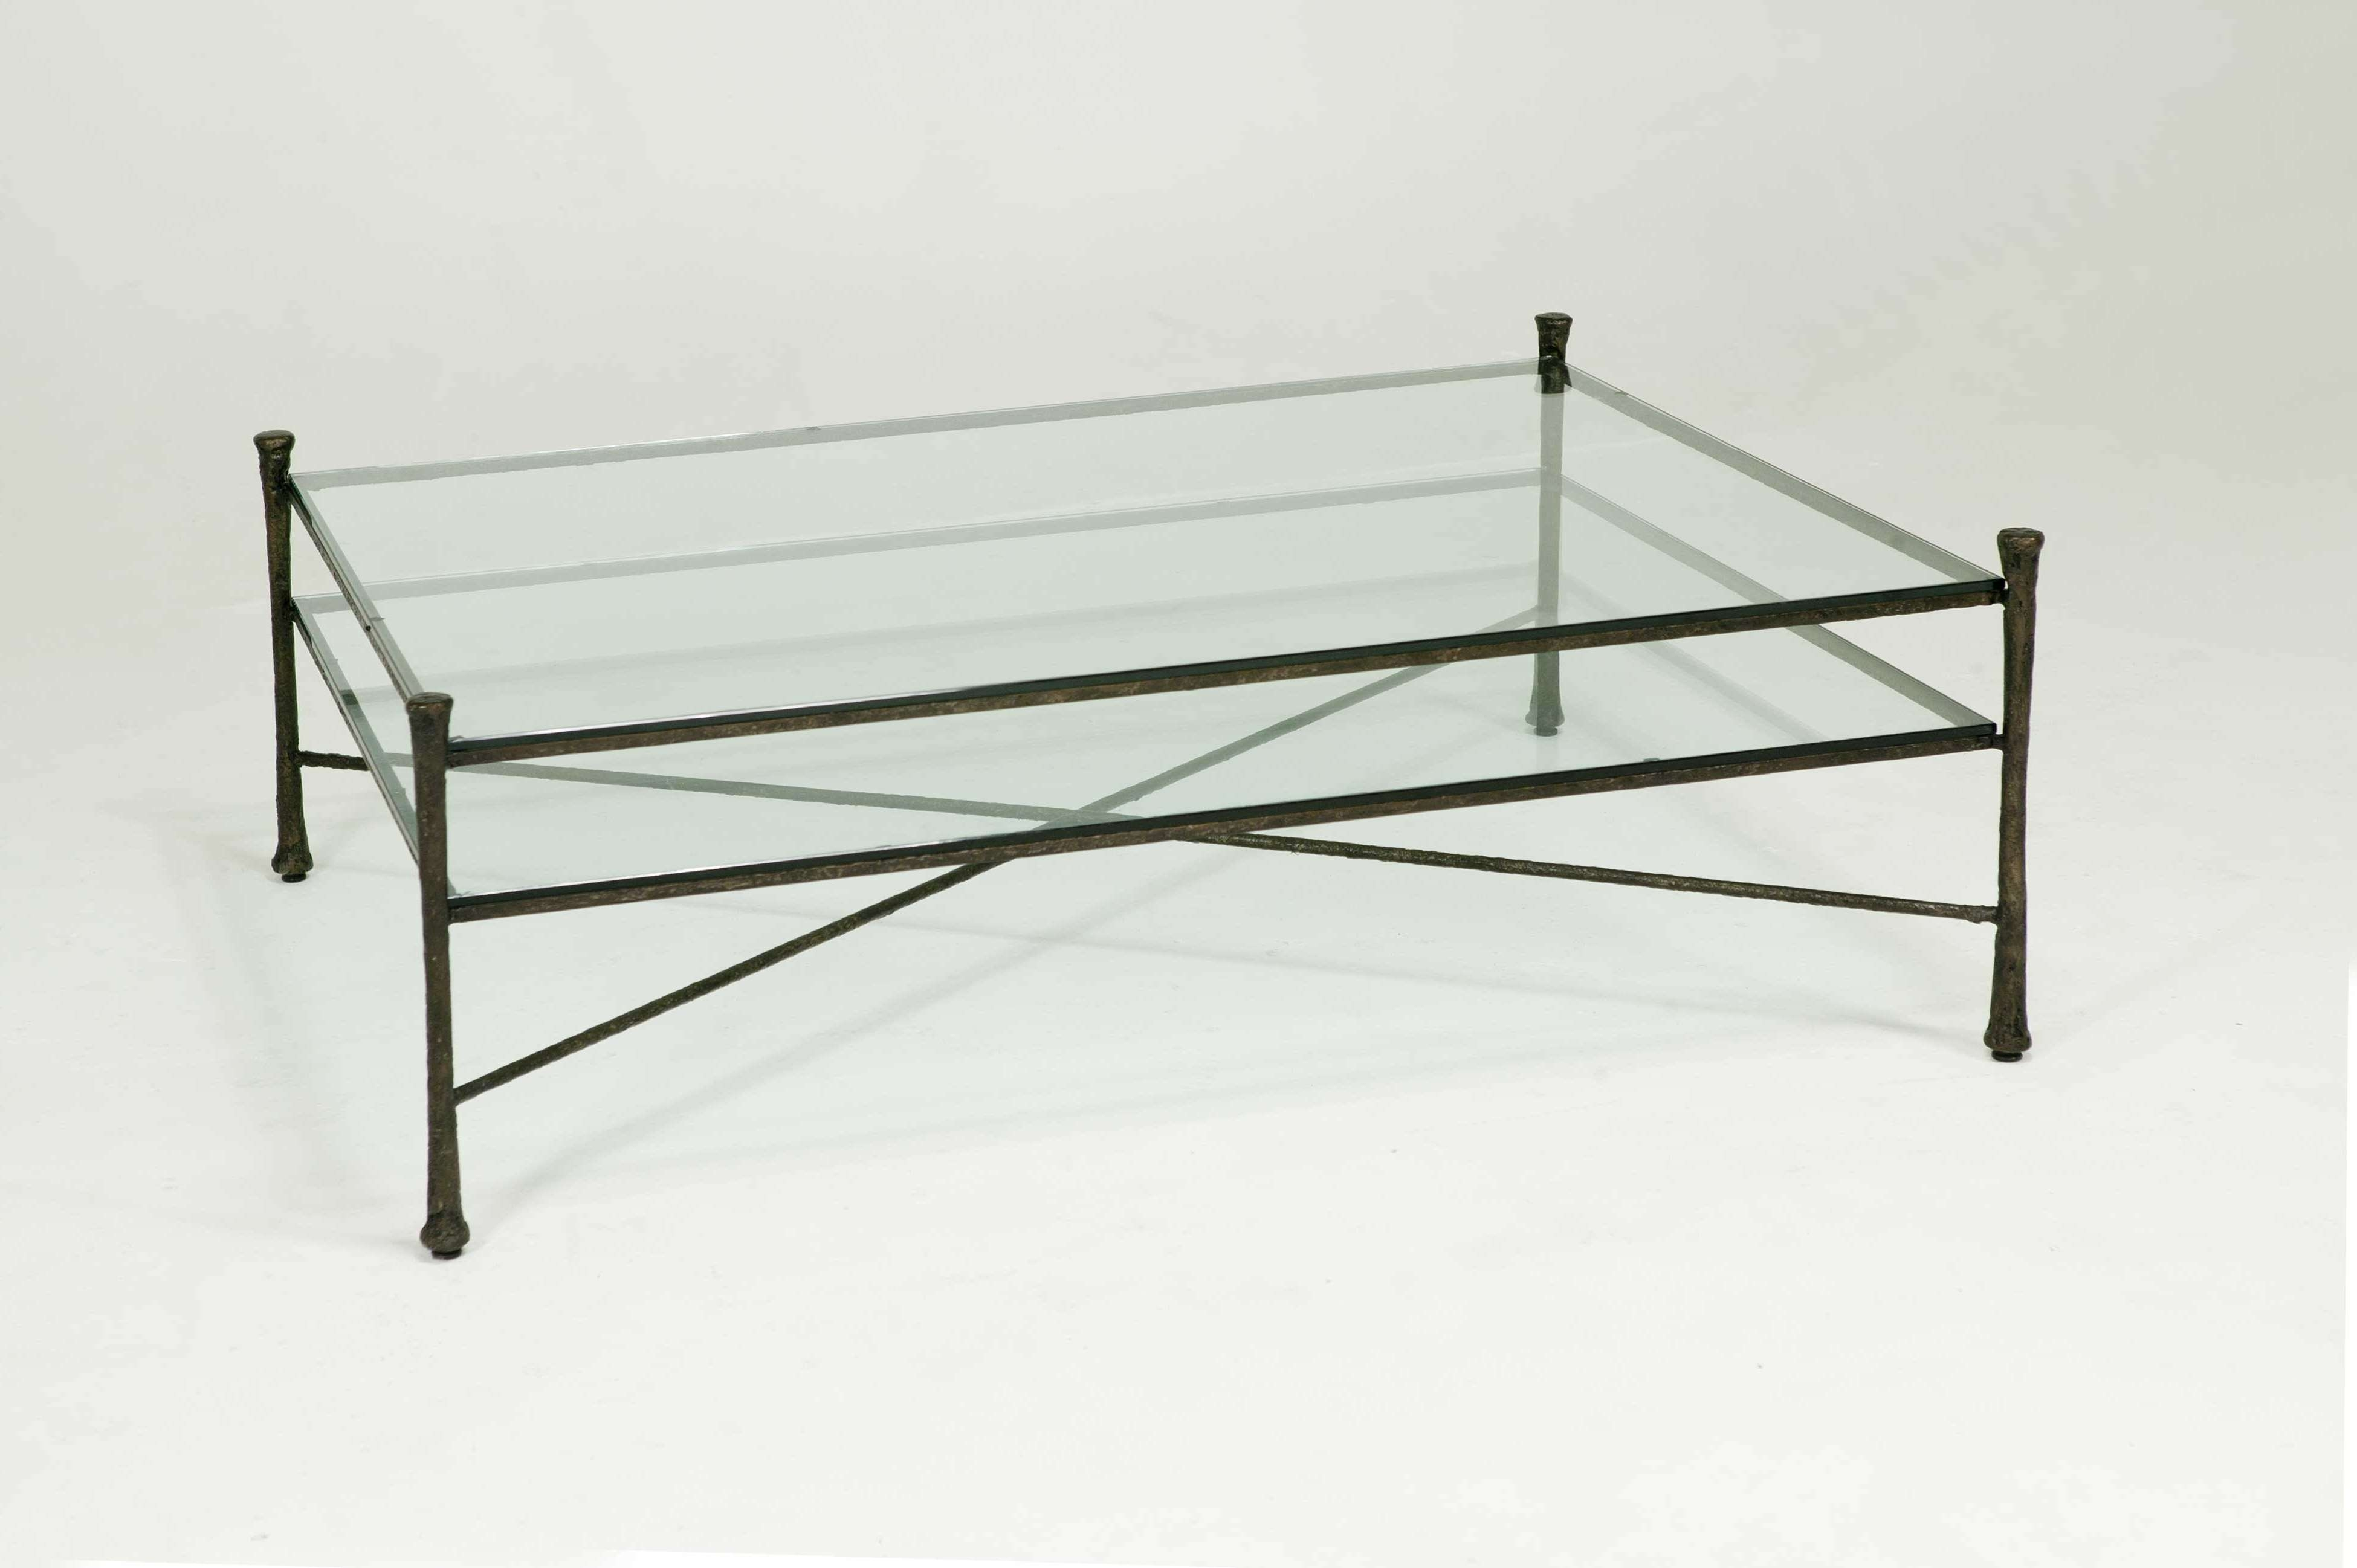 Decorations : Creative Glass Coffee Table With Iron Base Awesome Within Latest Iron Glass Coffee Table (View 2 of 20)